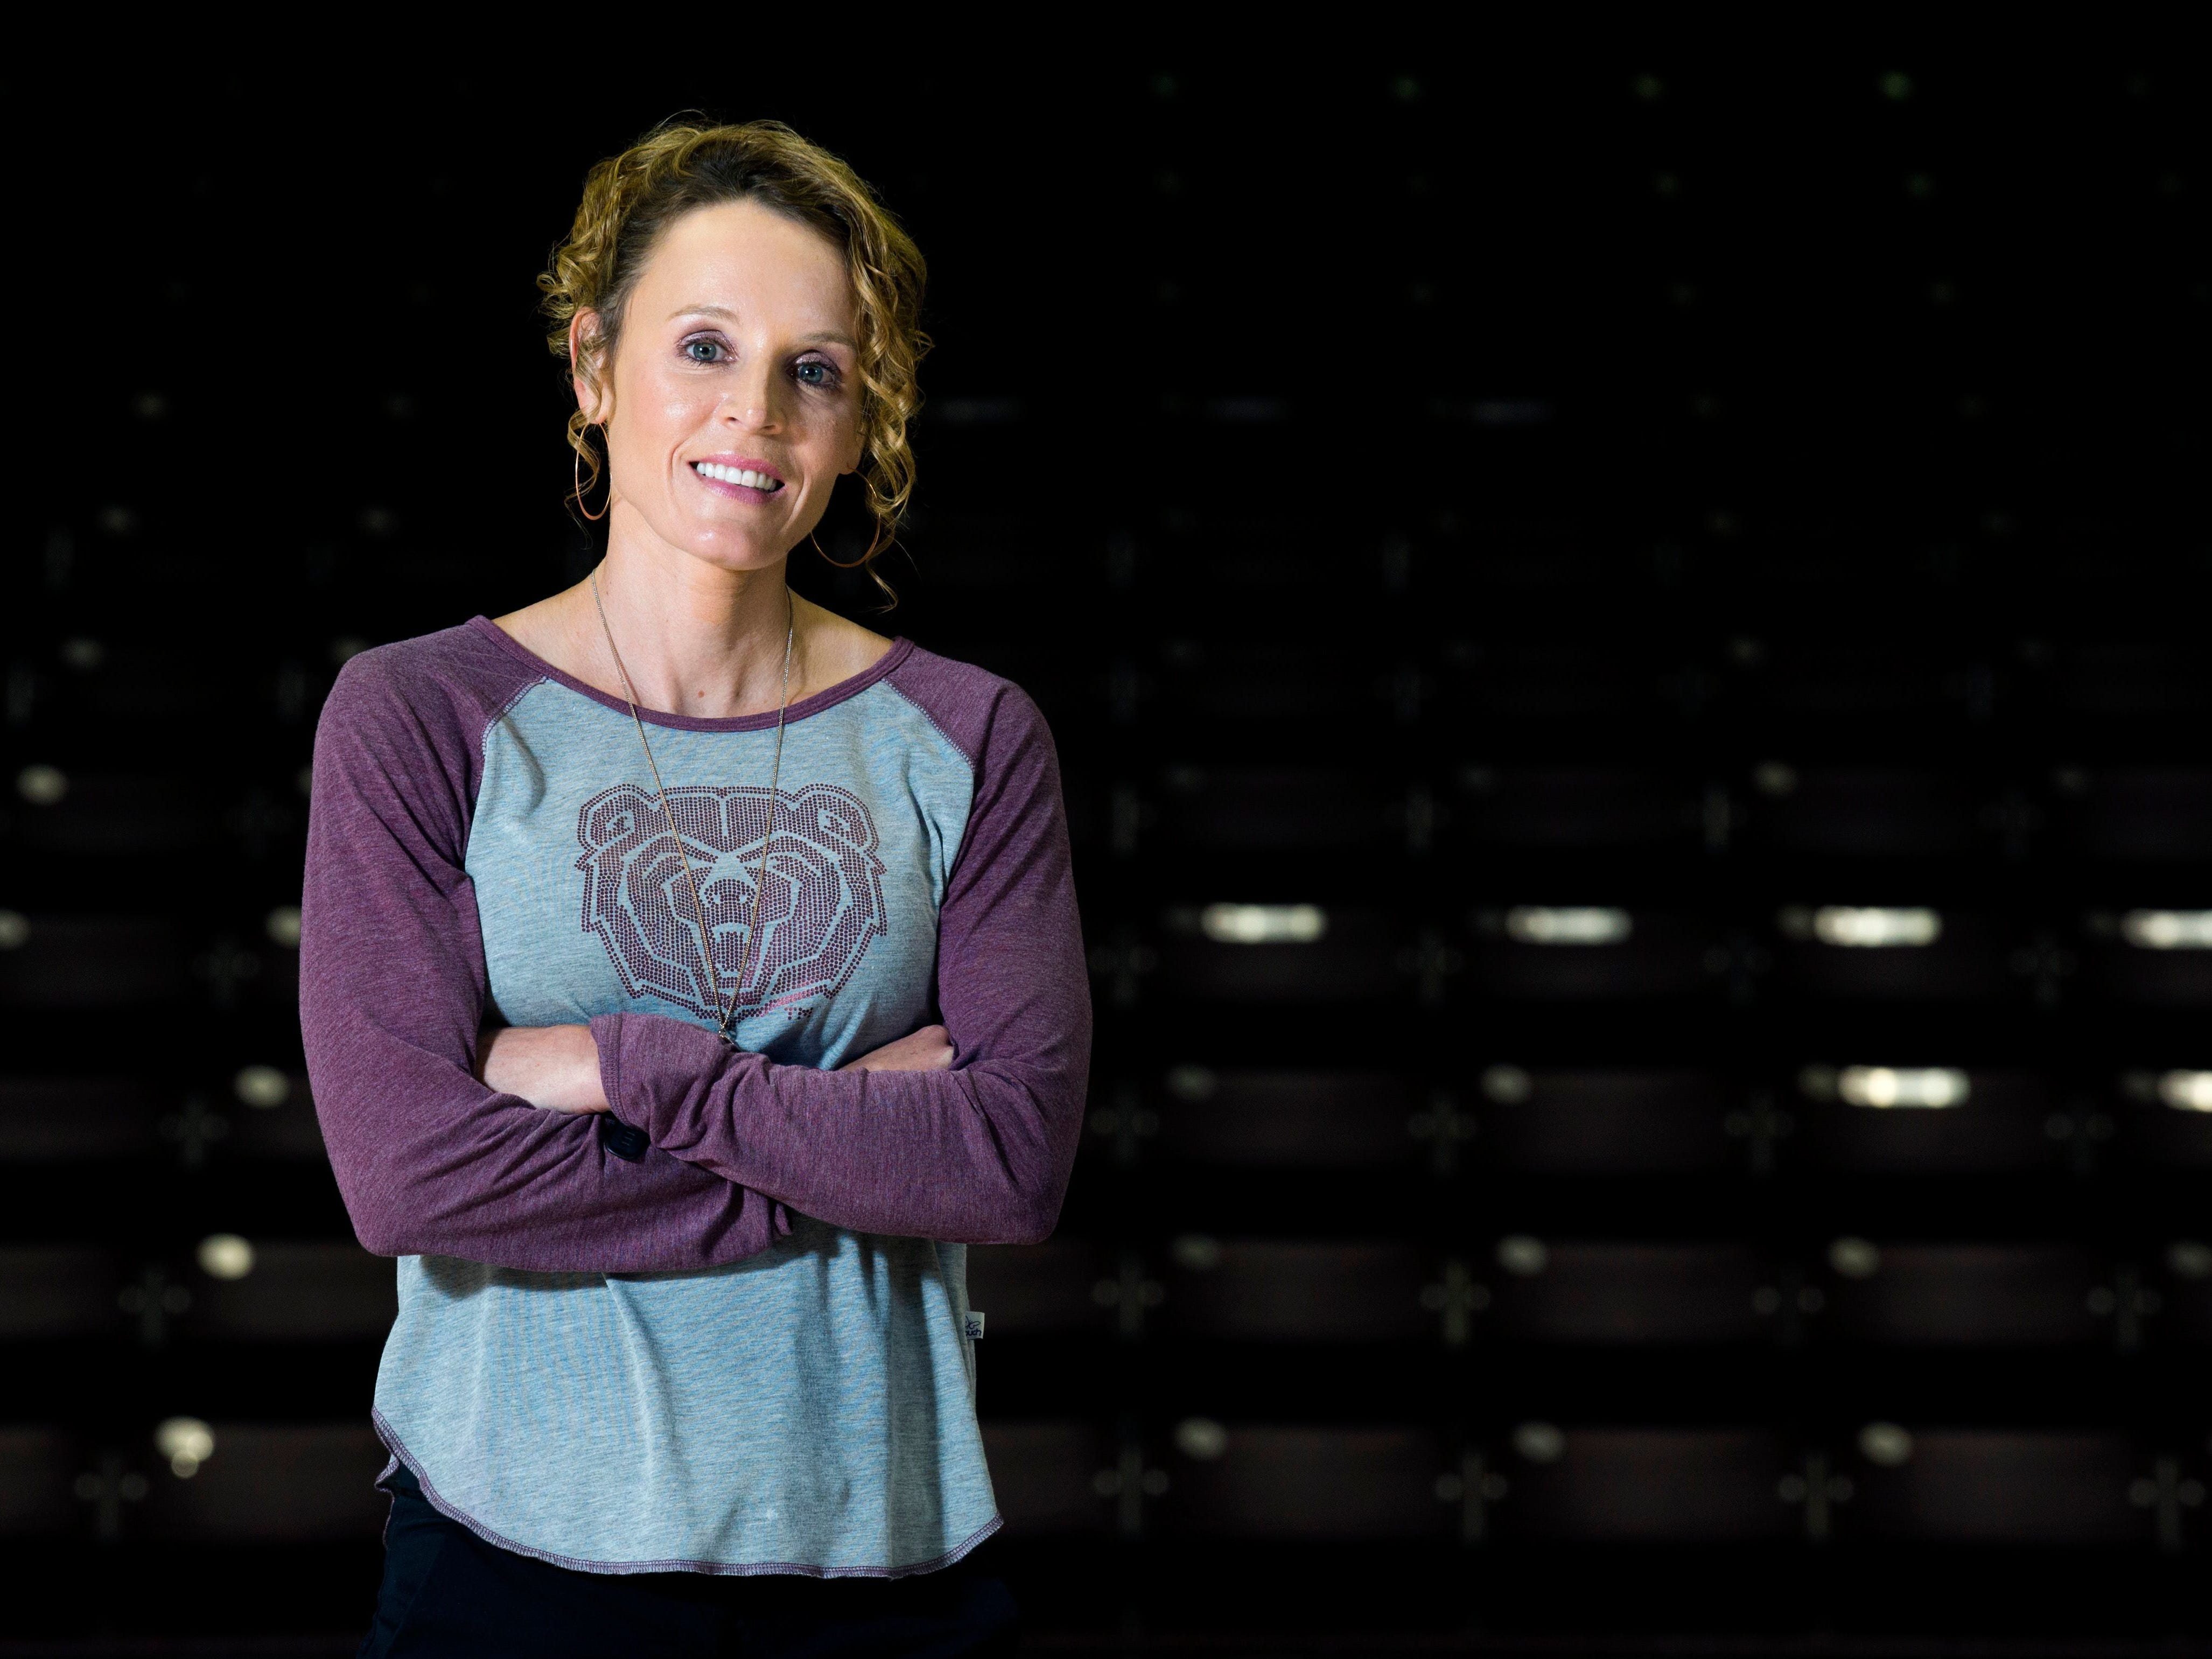 Jan. 8: Jackie Stiles, the Missouri State Lady Bears legend and assistant women's basketball coach, was diagnosed with ocular melanoma, a rare form of eye cancer.